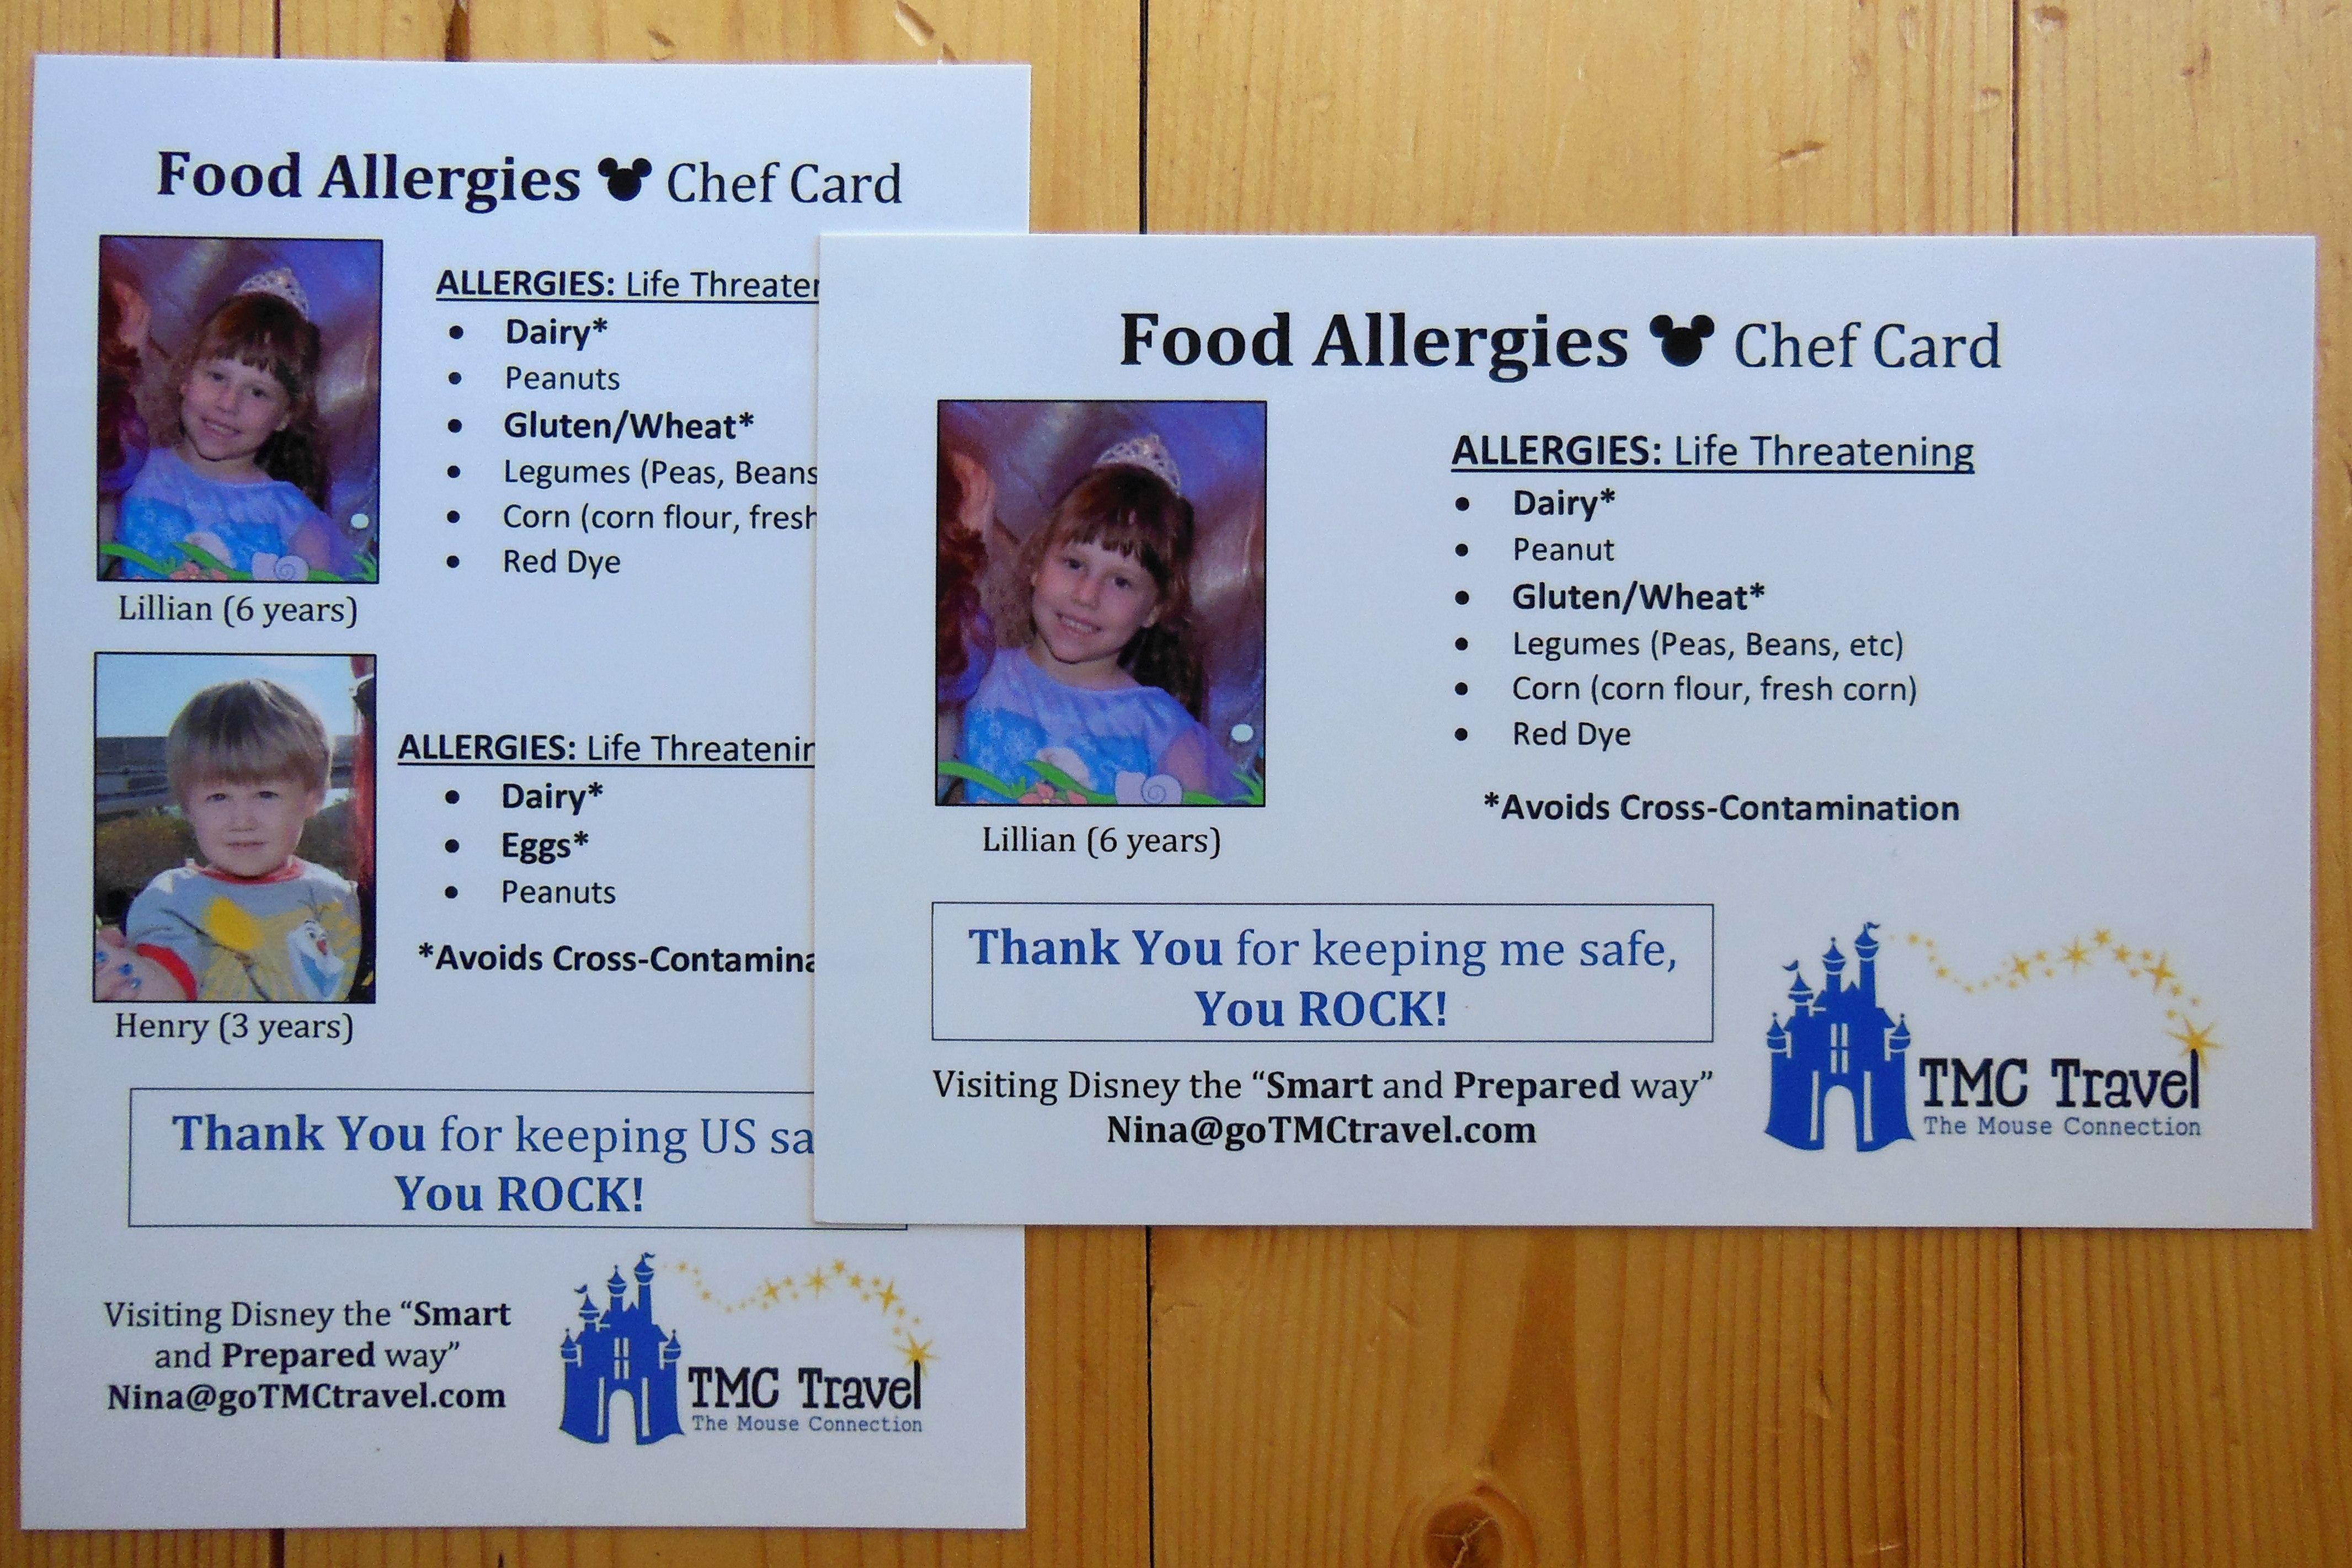 Food Allergy Chef Cards - FREE for my clients. Book a trip today ...